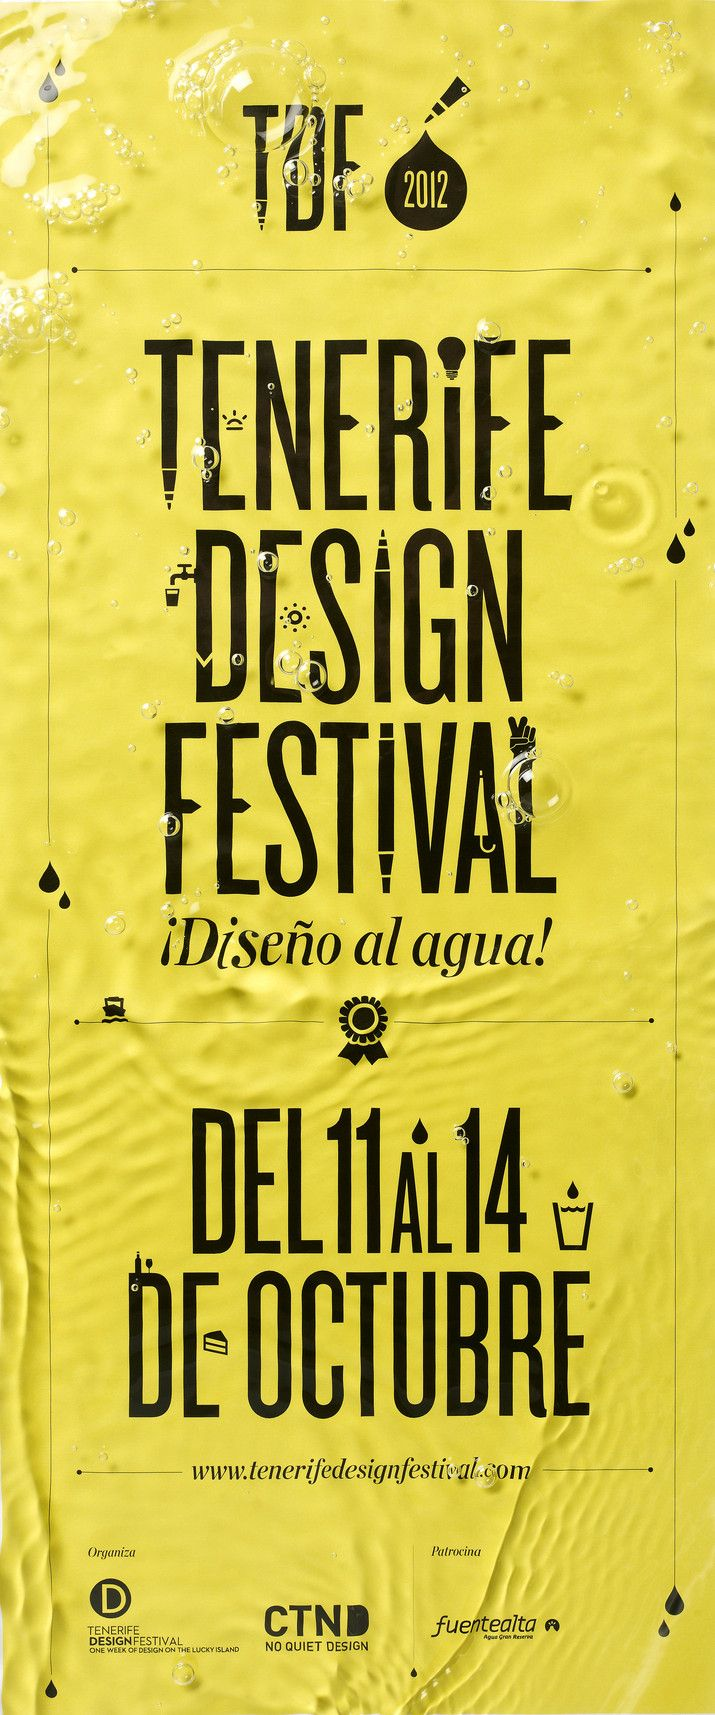 Tenerife Design Festival poster by Lo Siento..